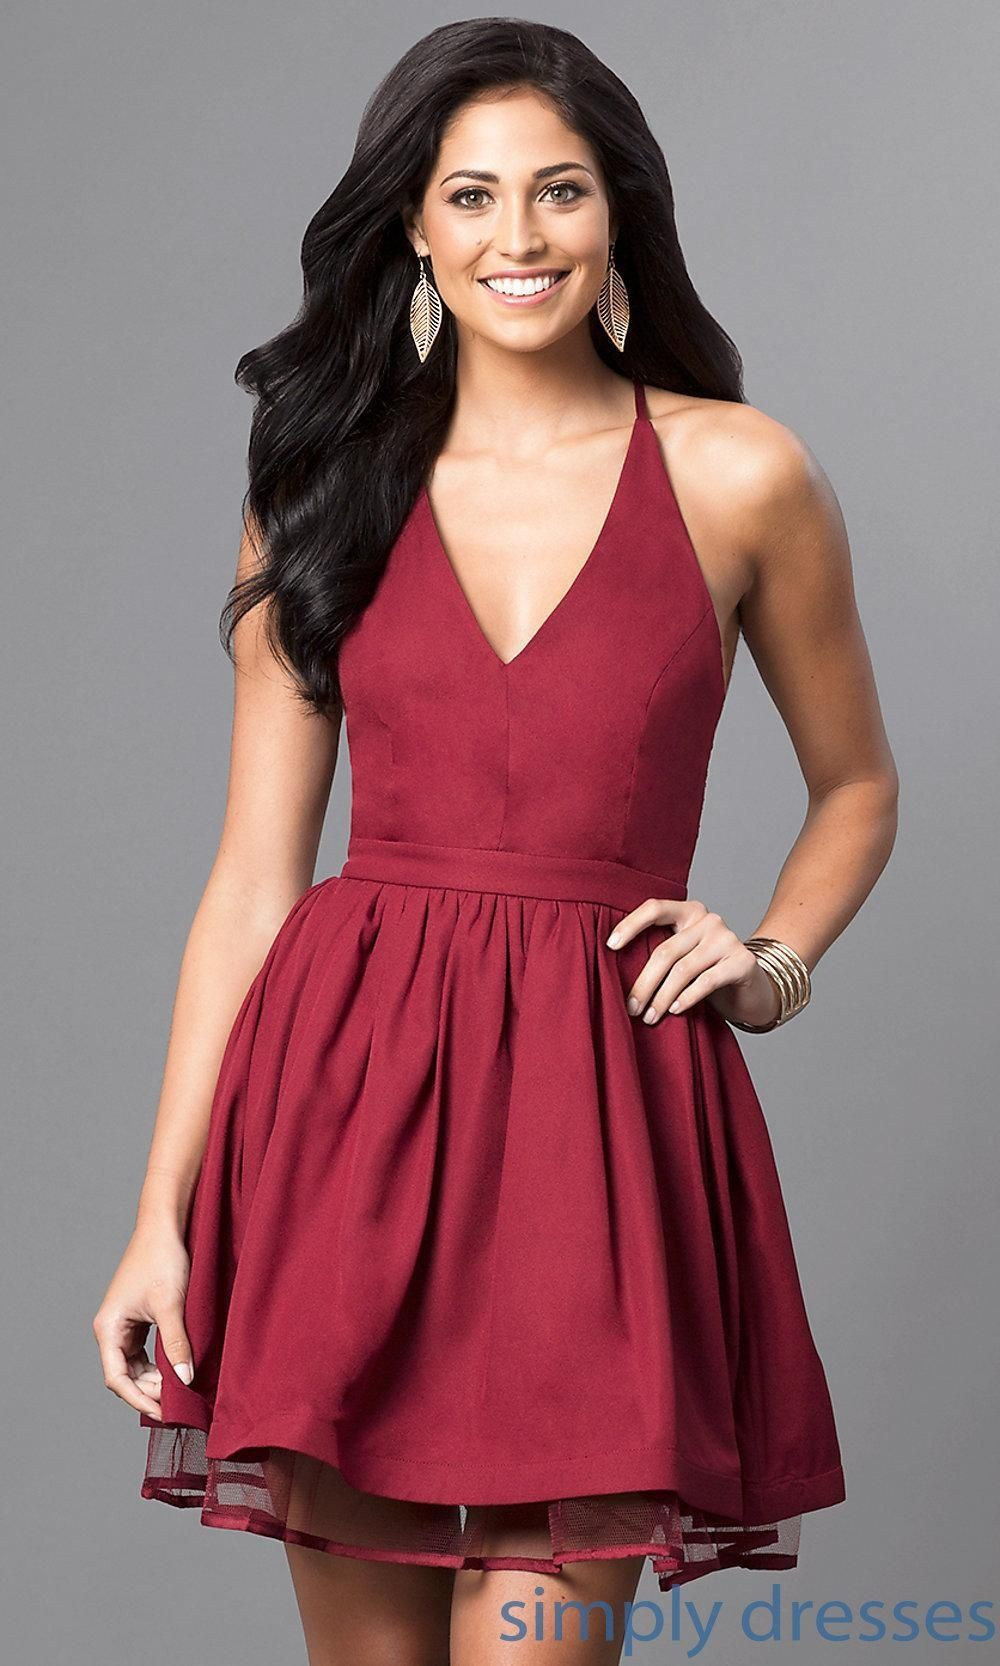 Looking For The Perfect V Neck Short Lace Back Semi Formal Dress